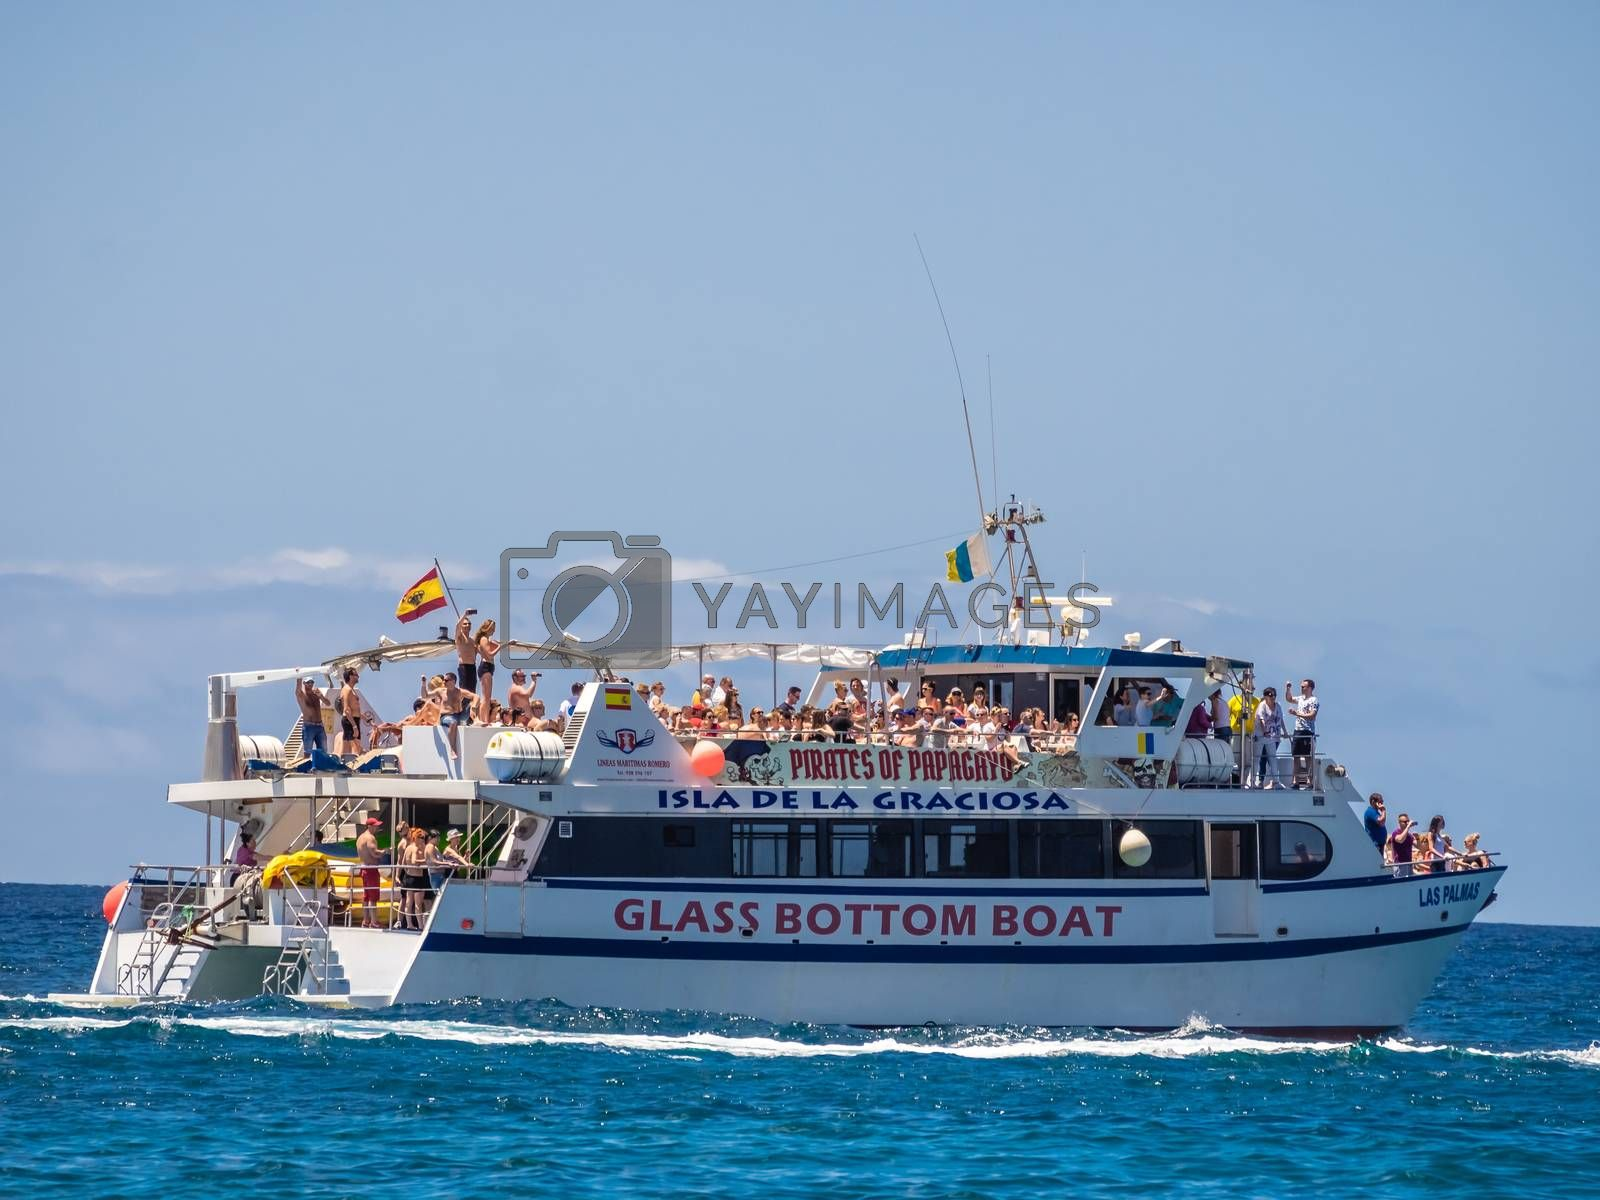 Small private party boat sailing between Lanzarote and Fuerteventura Islands in Canary Islands, Spain. Picture taken 20 April 2016.